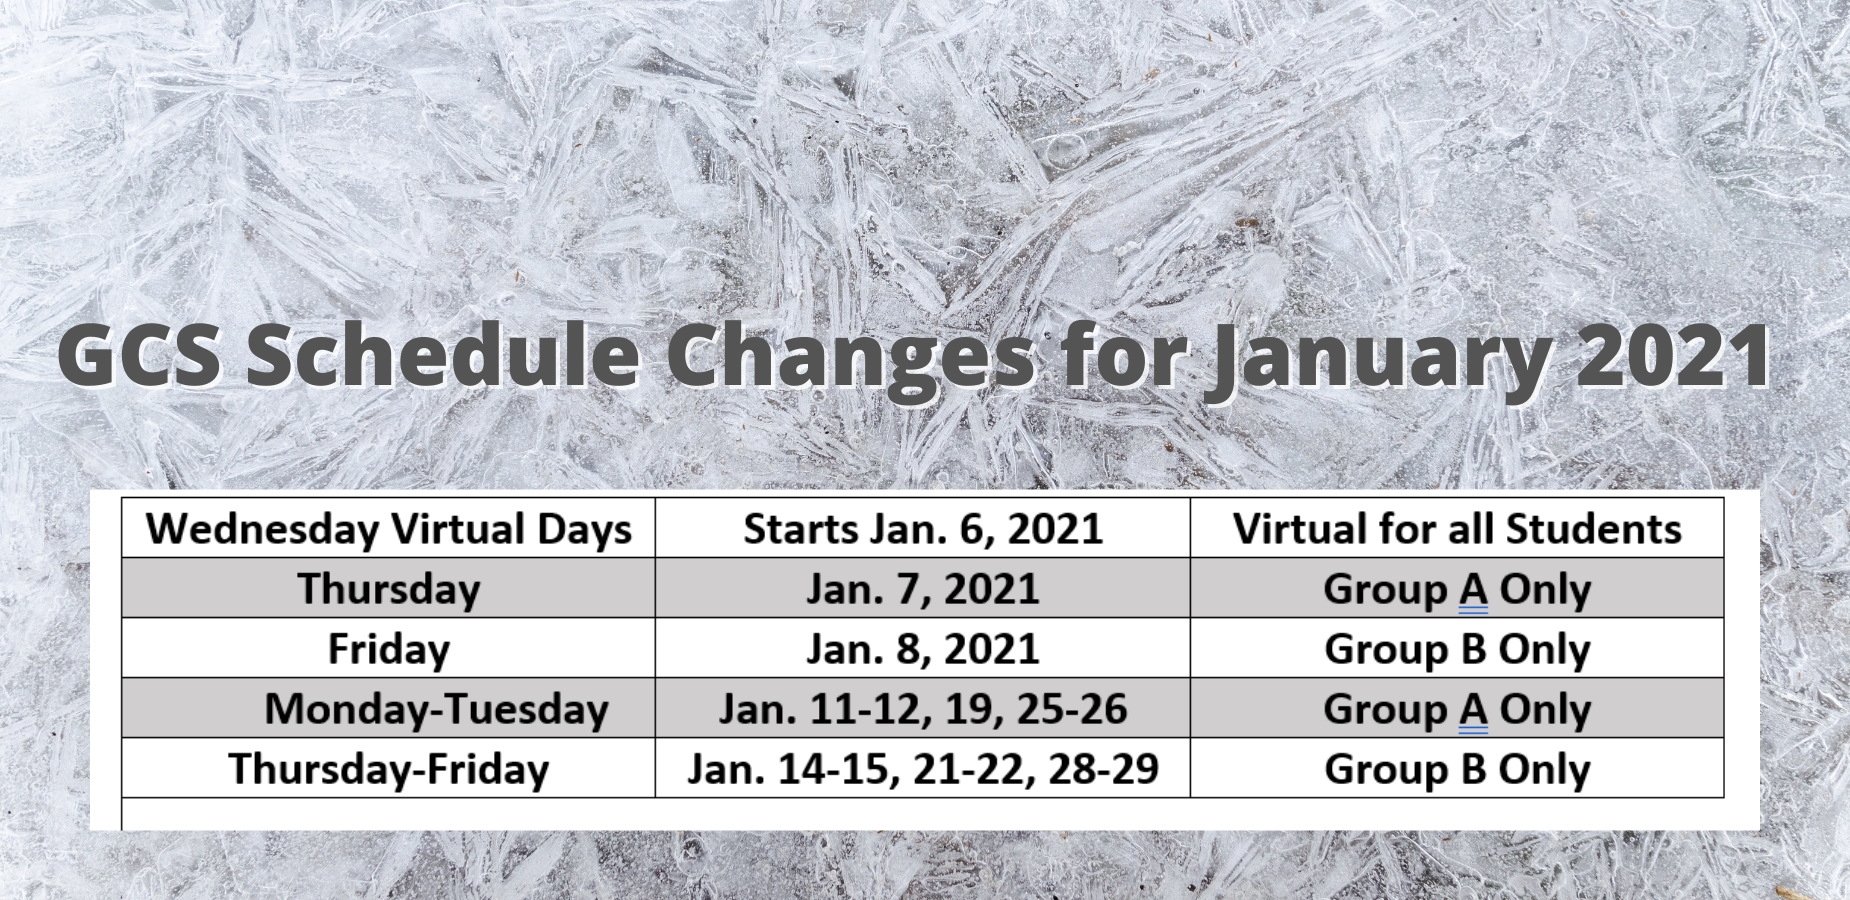 GCS Schedule Change for January 2021